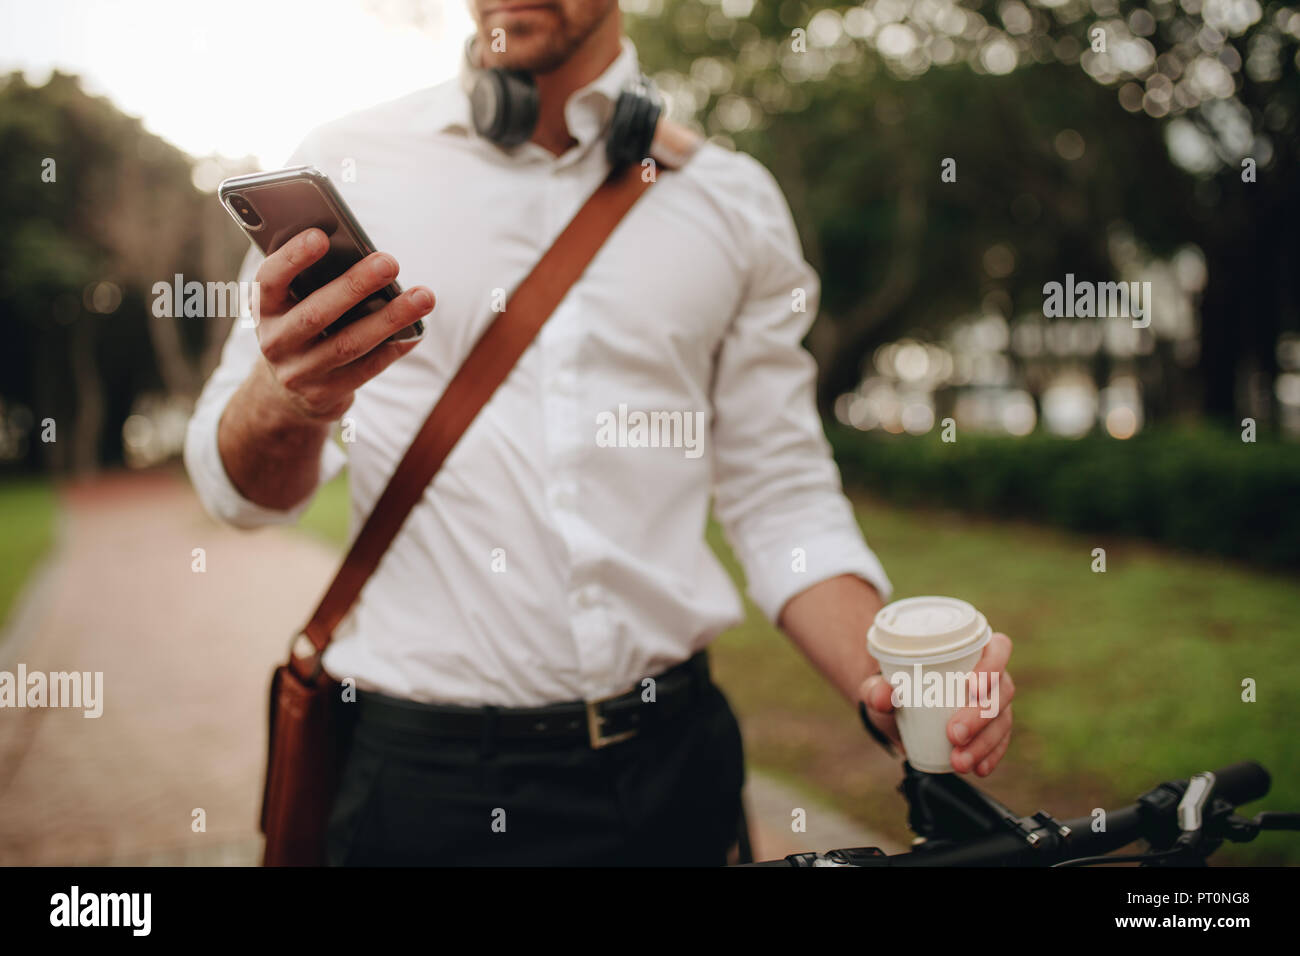 Man checking his mobile phone holding a disposable coffee cup while commuting to office. Businessman using mobile phone while walking to office. - Stock Image